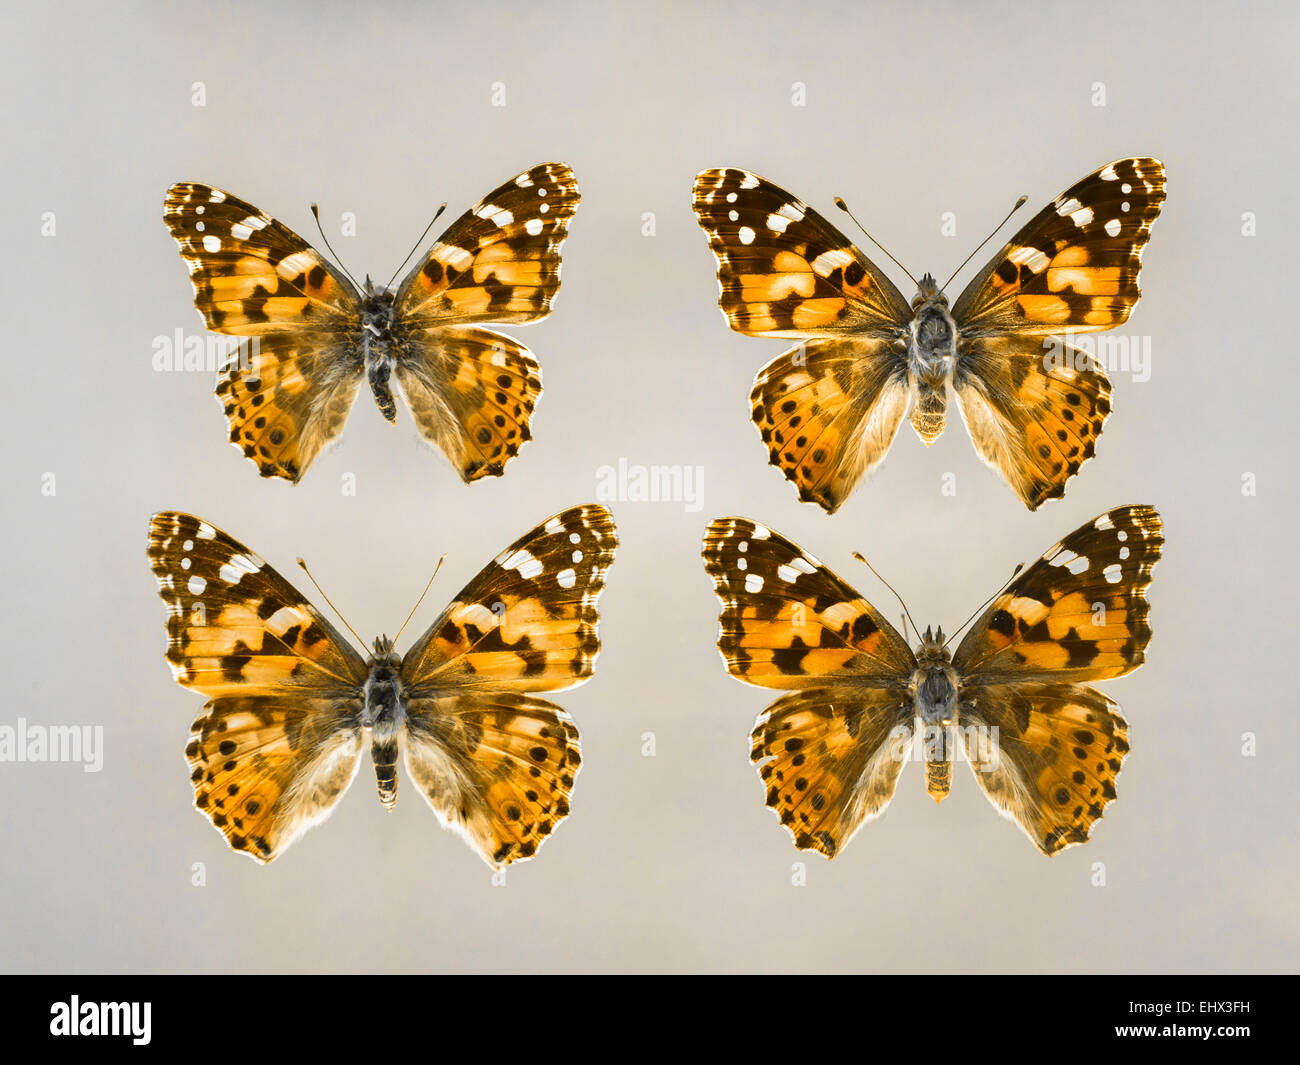 Four brush-footed butterflies - Stock Image